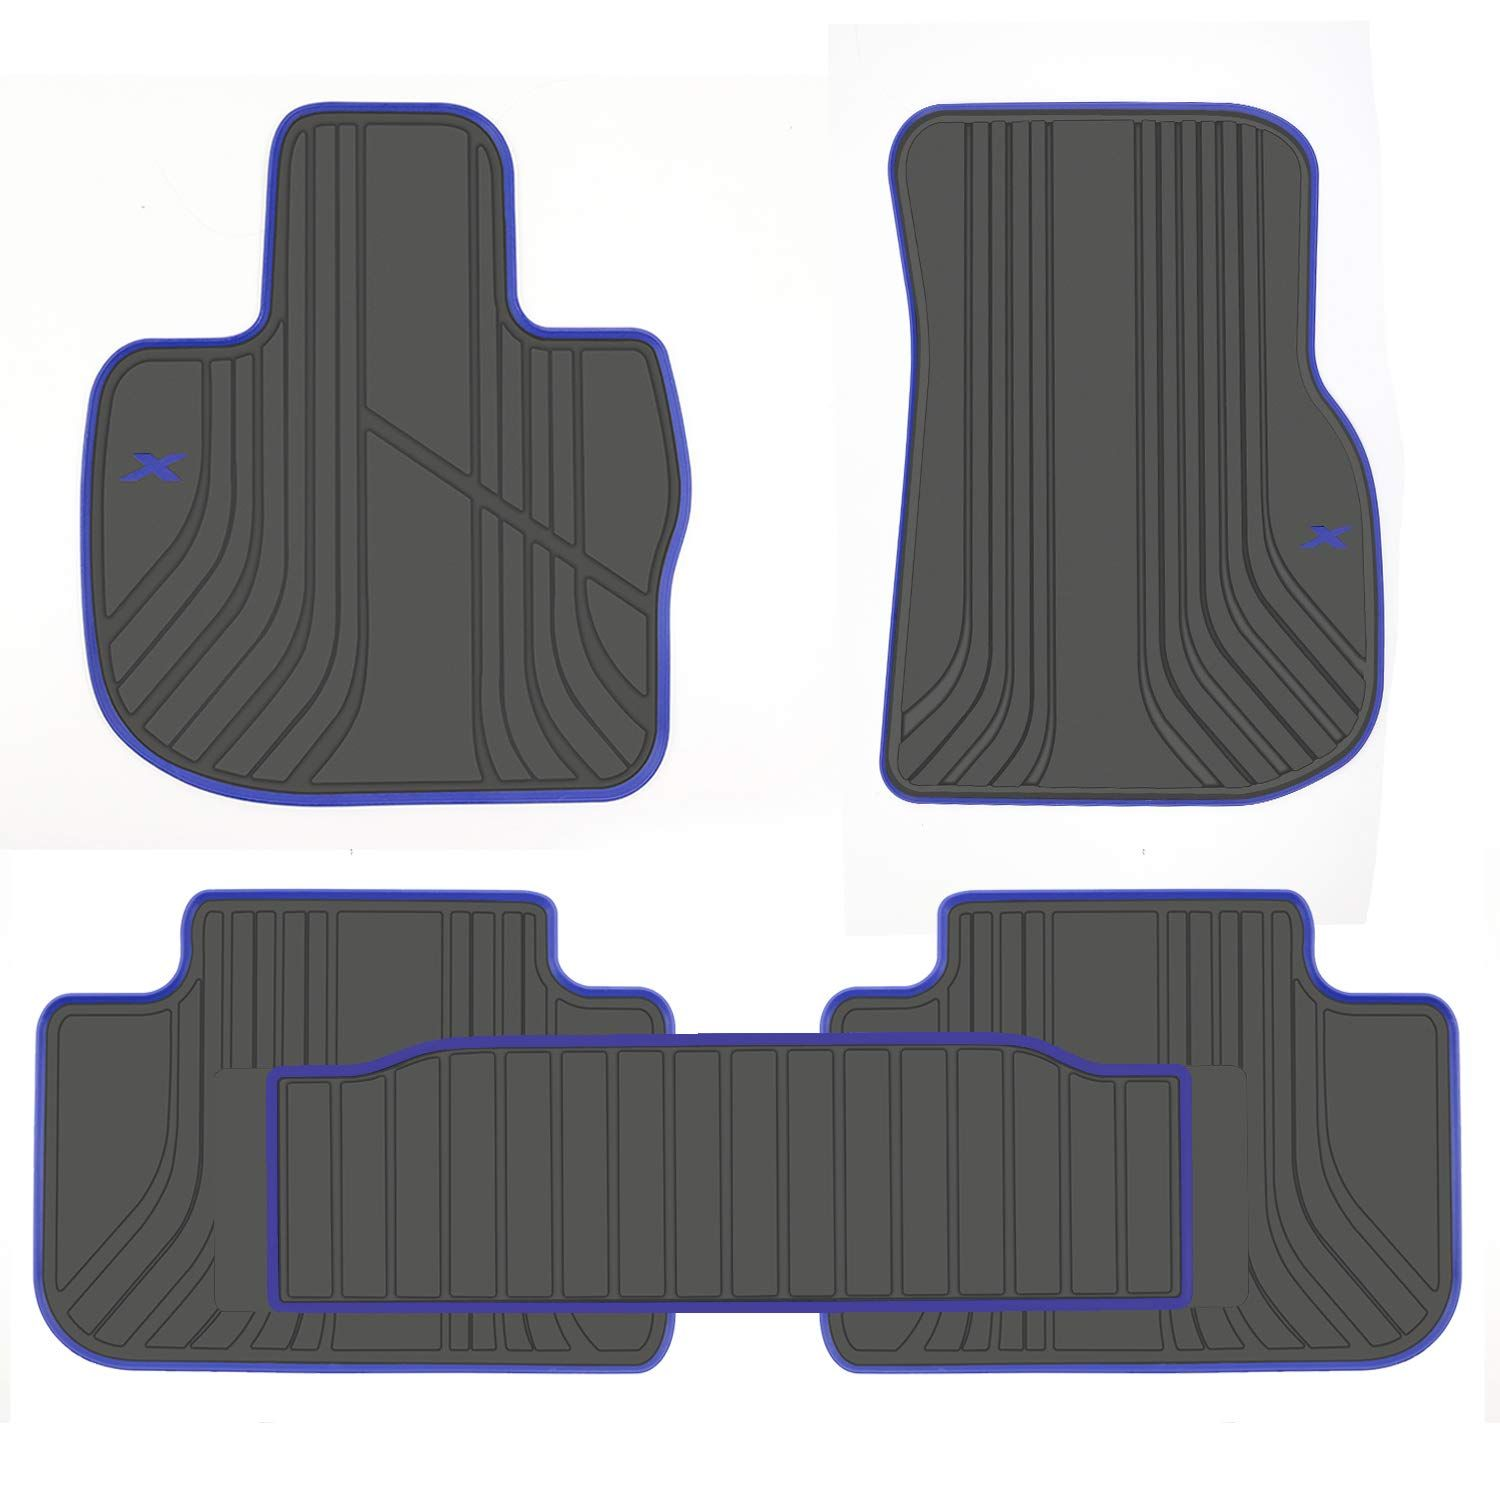 San Auto Car Floor Mat For Bmw X3 G01 X4 G02 Custom Fit 2018 2019 Black And Navy Blue Rubber All Weather Heavy Duty And Odor In 2020 Bmw X3 Black And Navy